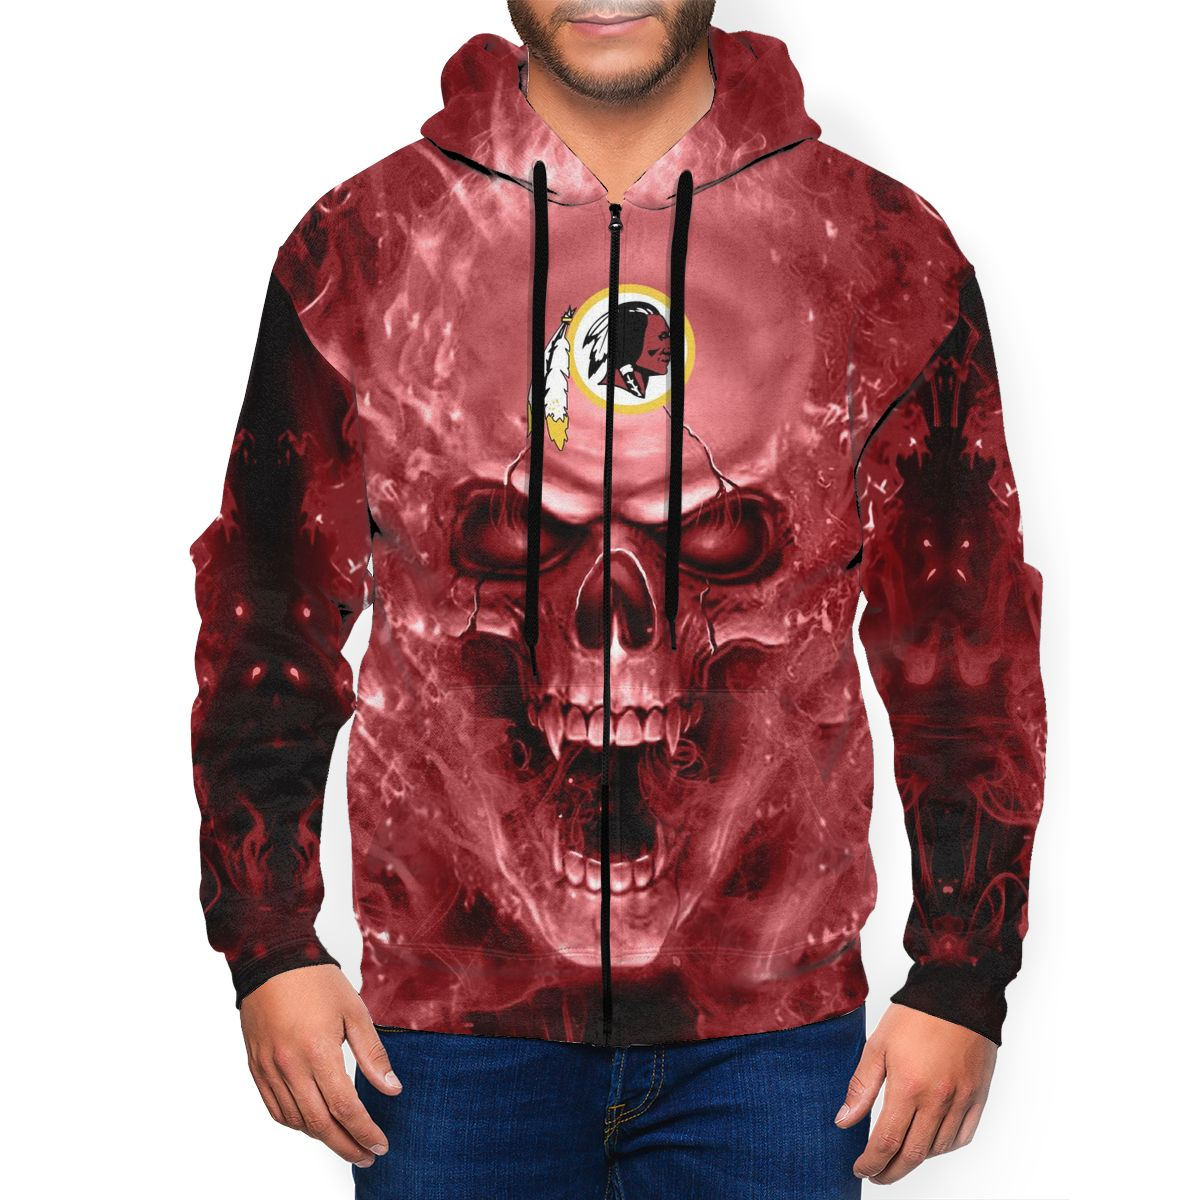 3D Skull Redskins Men's Zip Hooded Sweatshirt